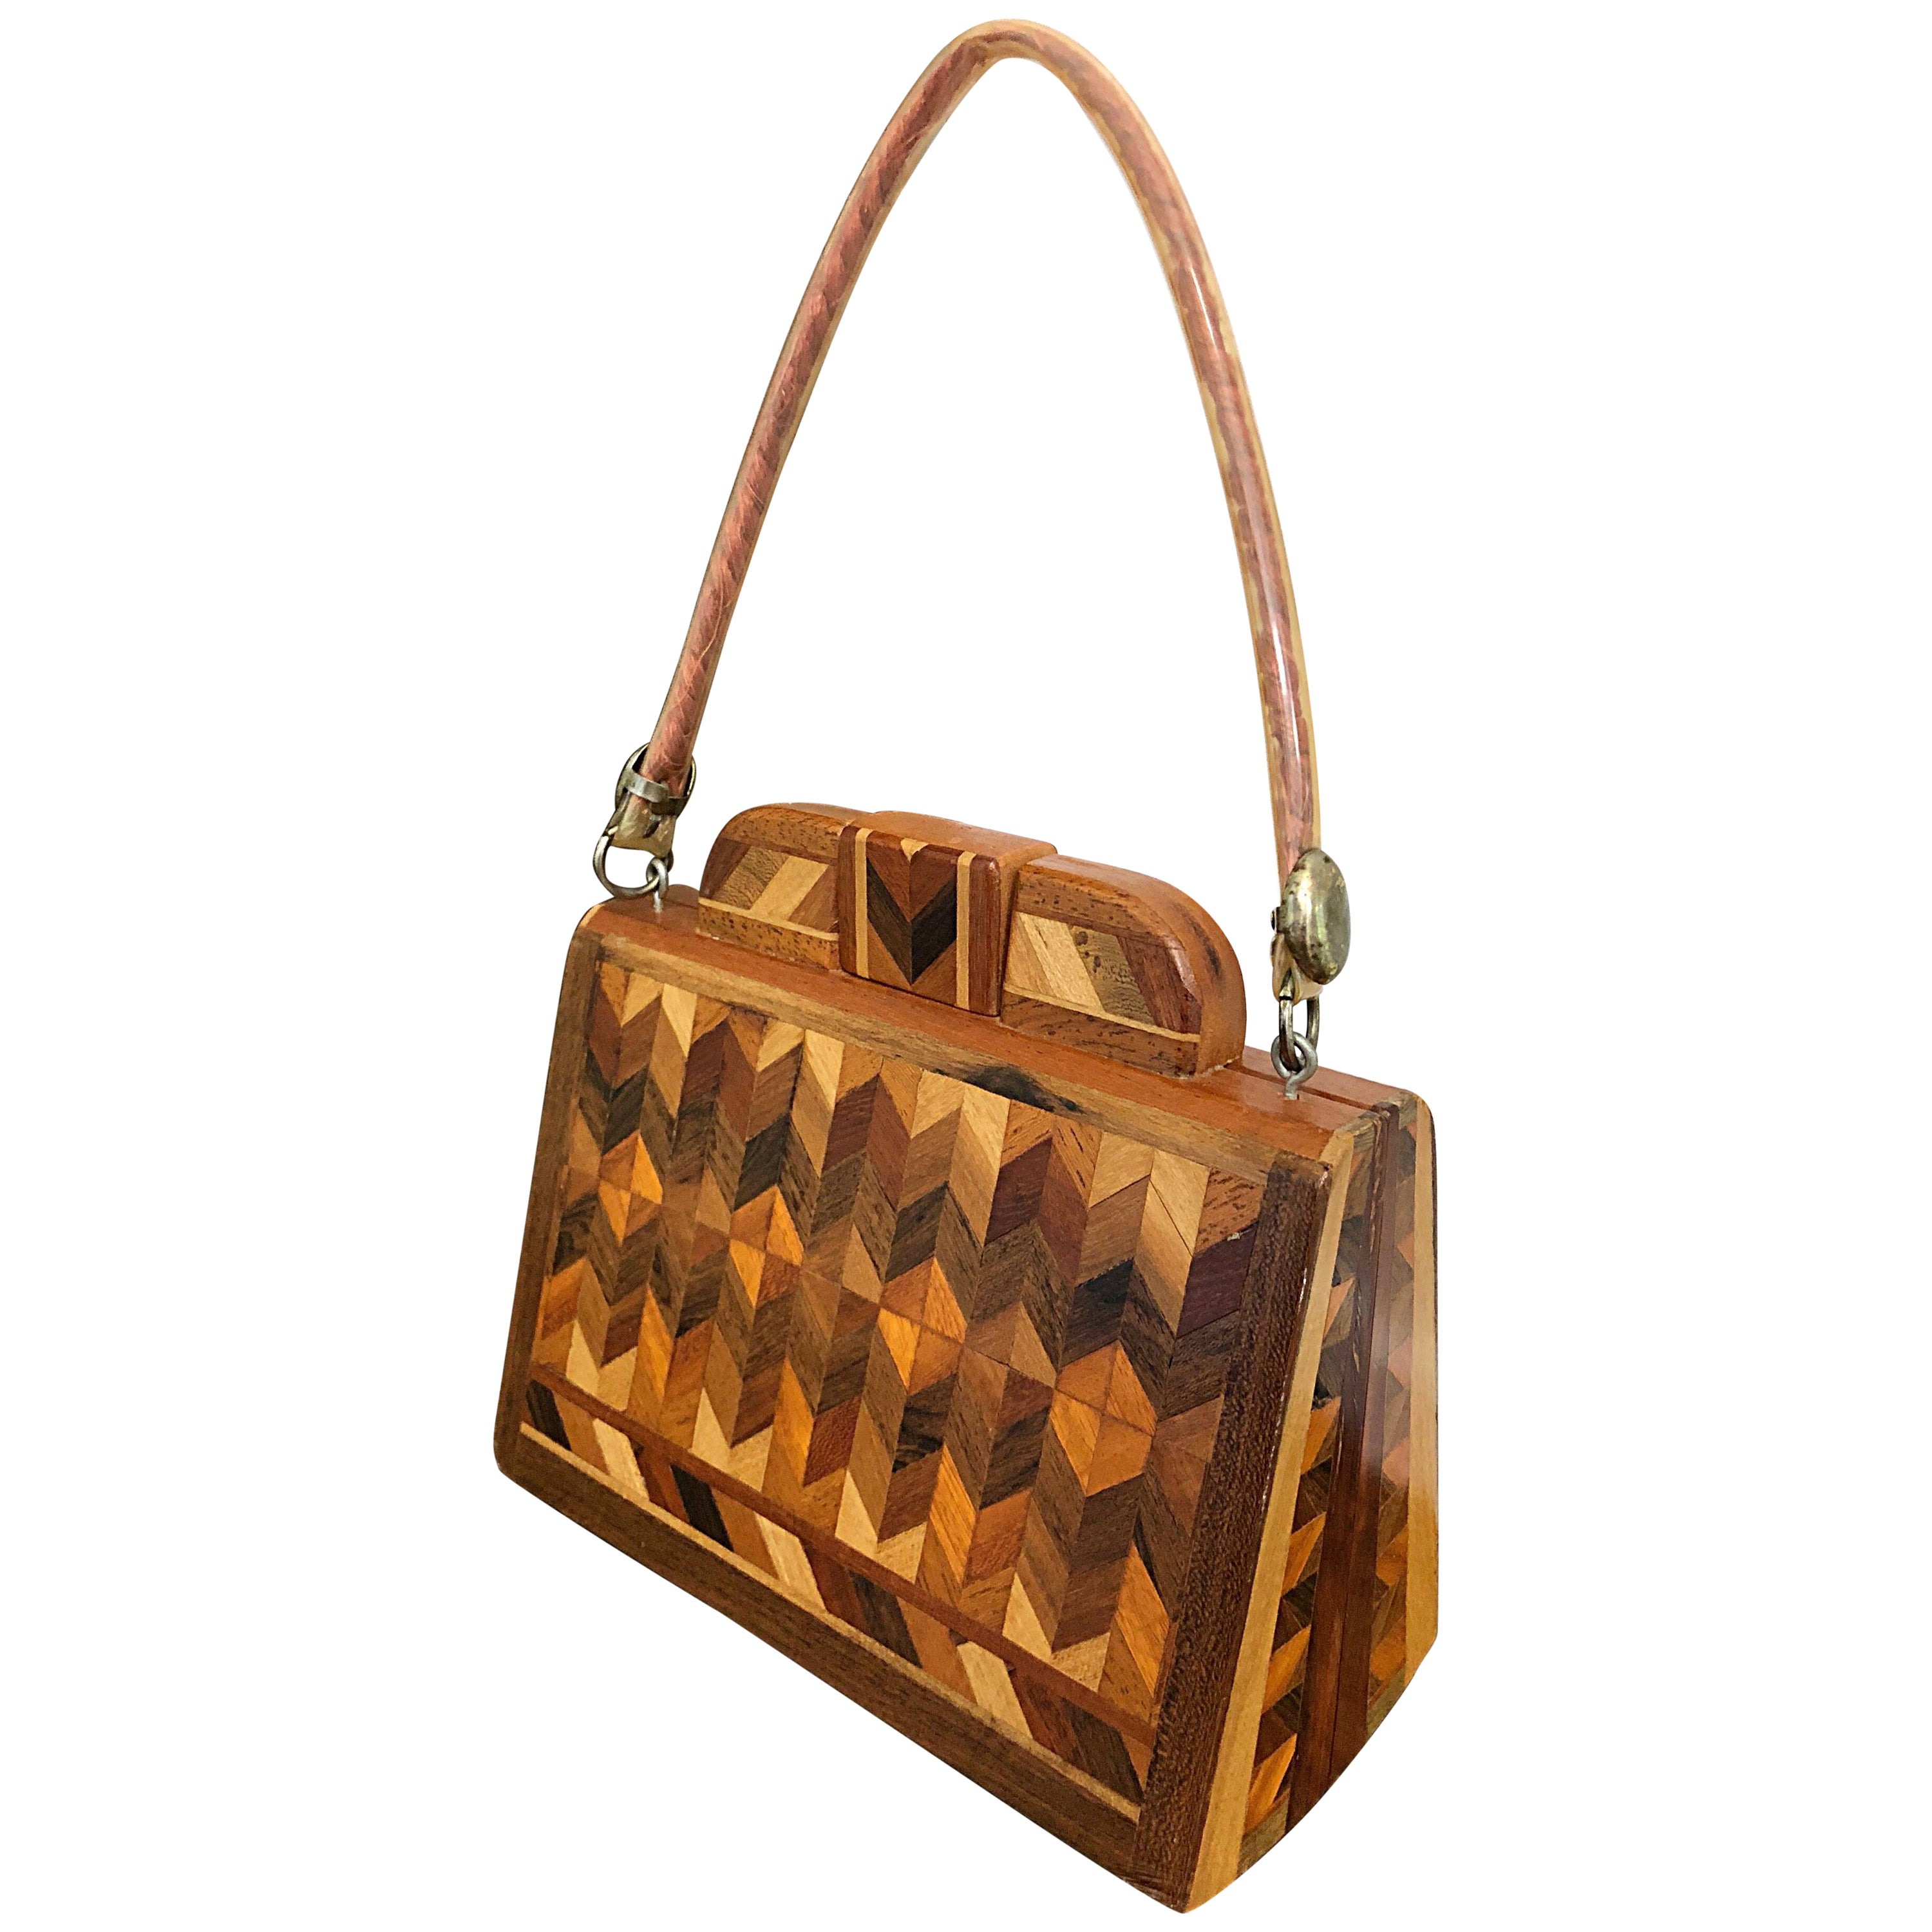 Chic 1960s Wood Patchwork Novelty Egyptian Triangular Purse Vintage 60s Hand Bag